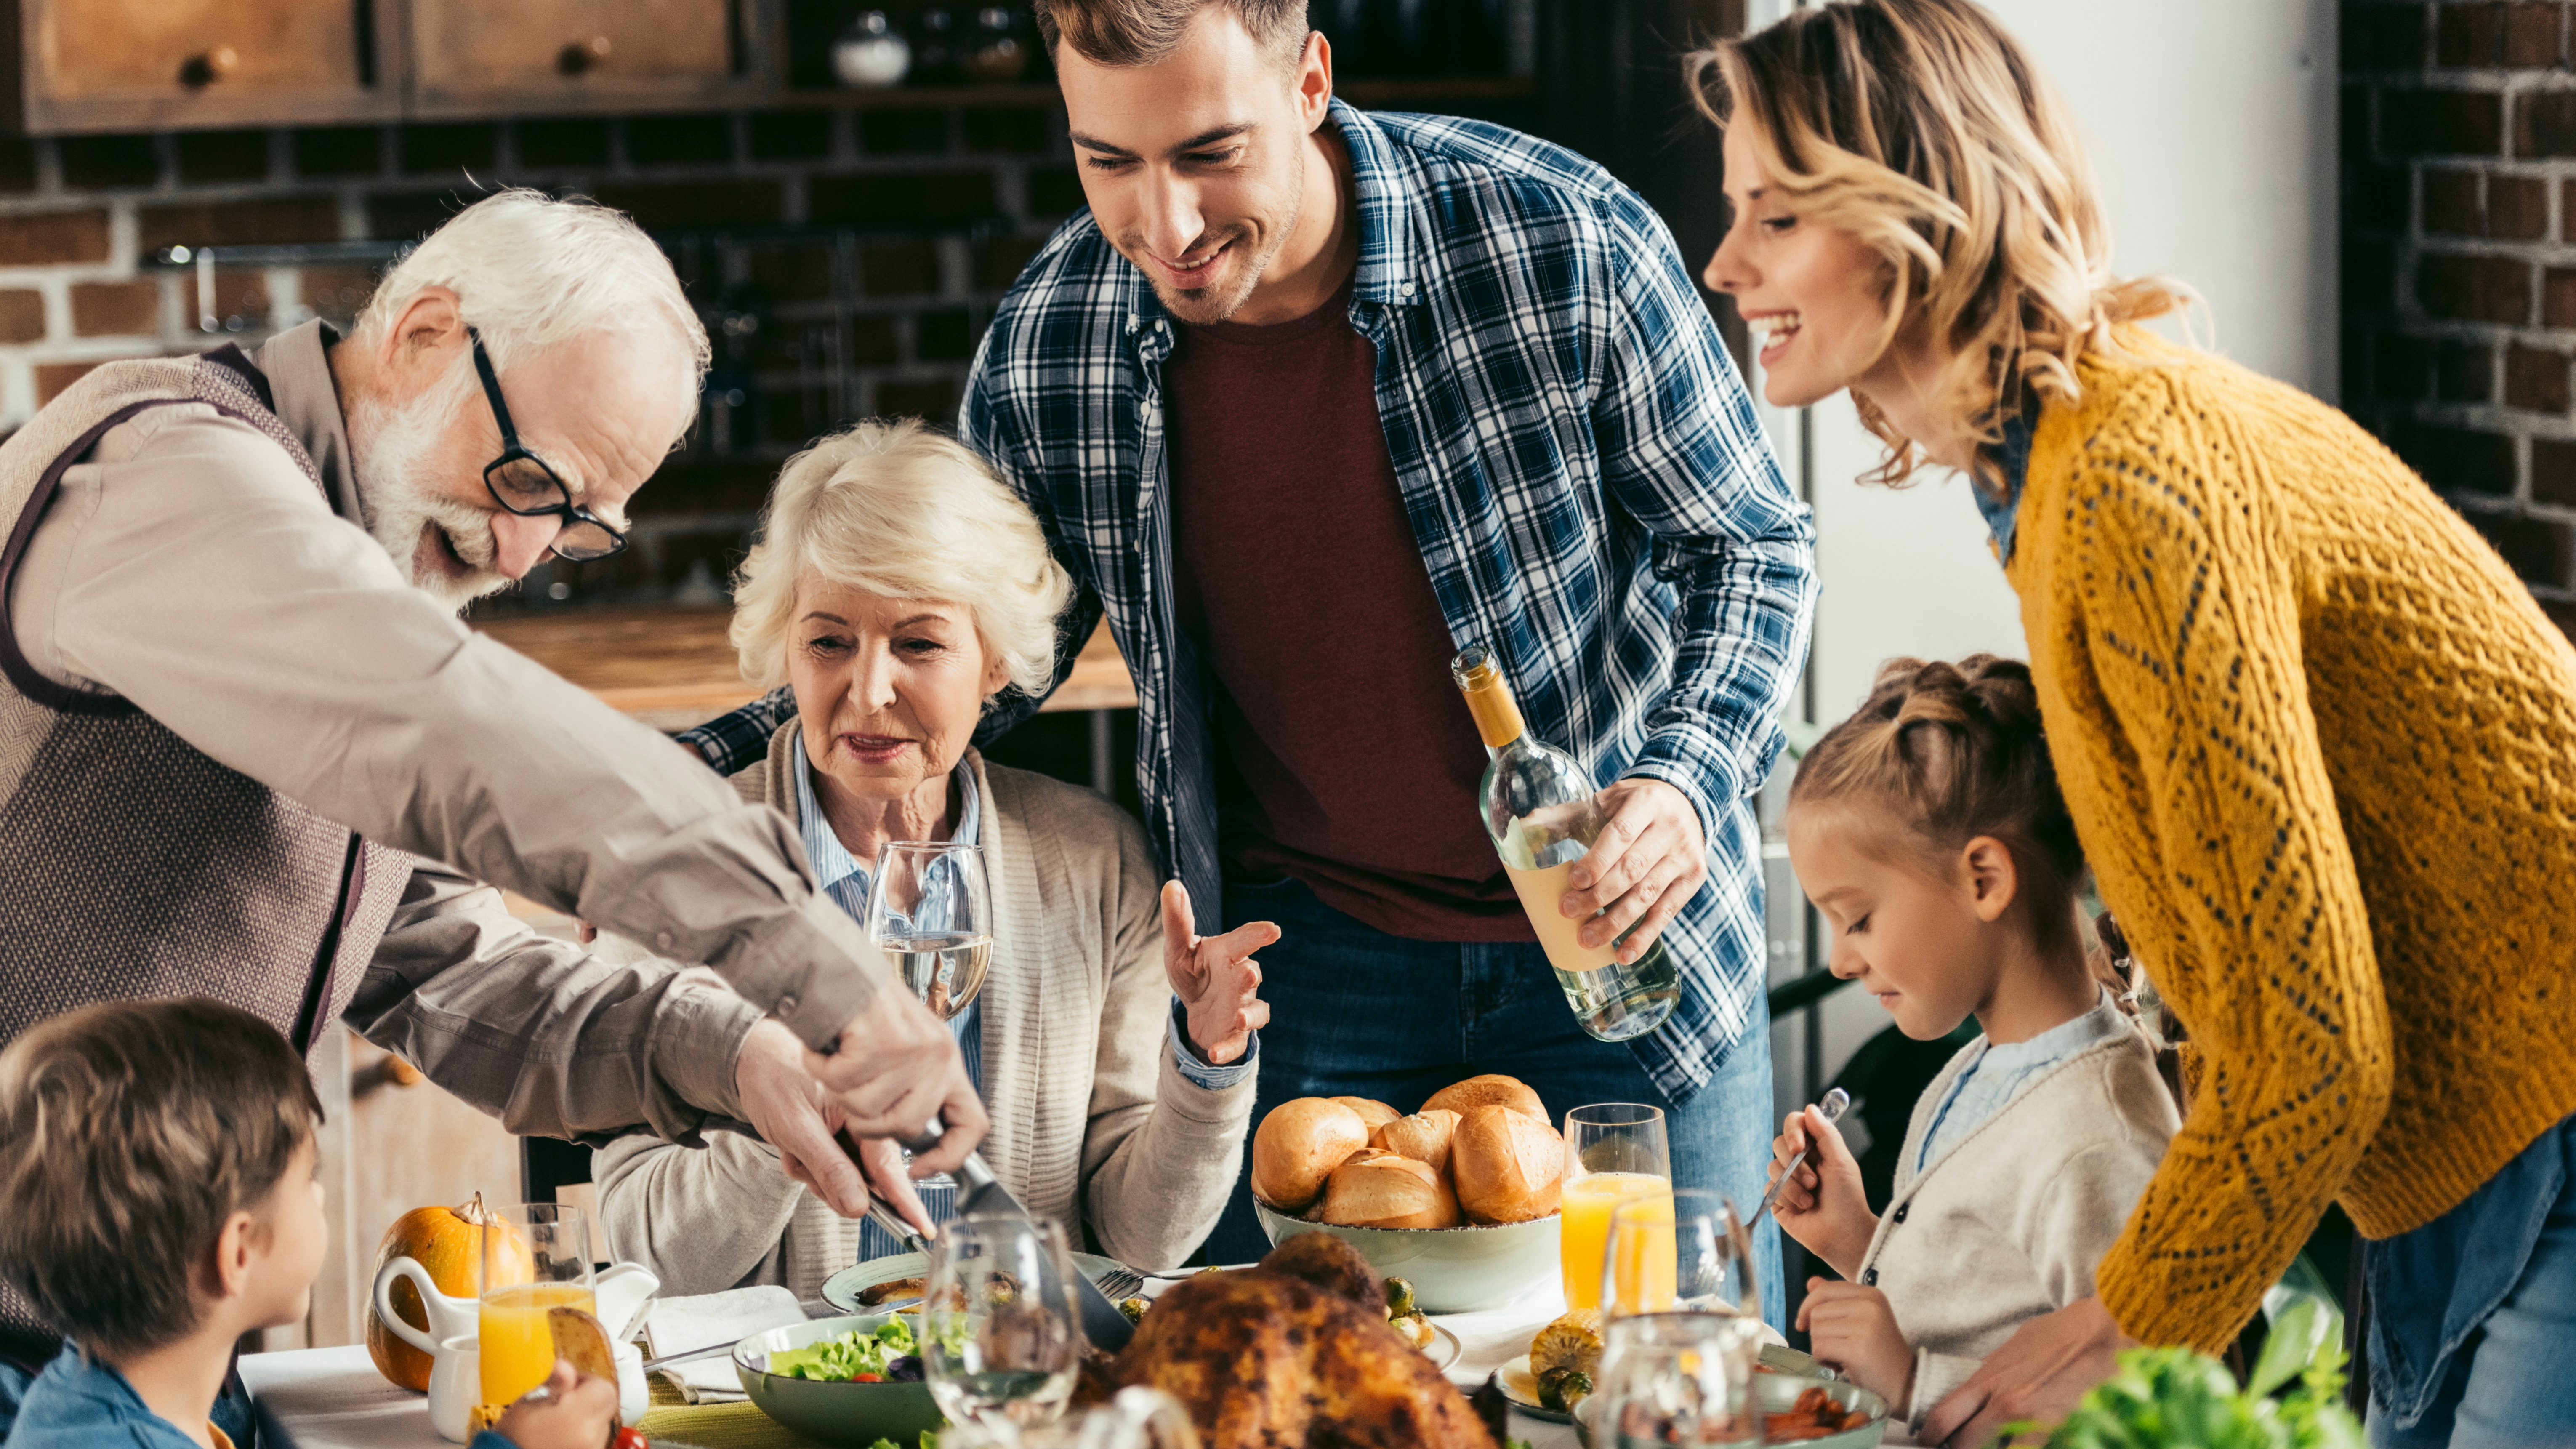 a multi-generational family with grandparents and children gathered at the dinner table for a turkey dinner at the holidays